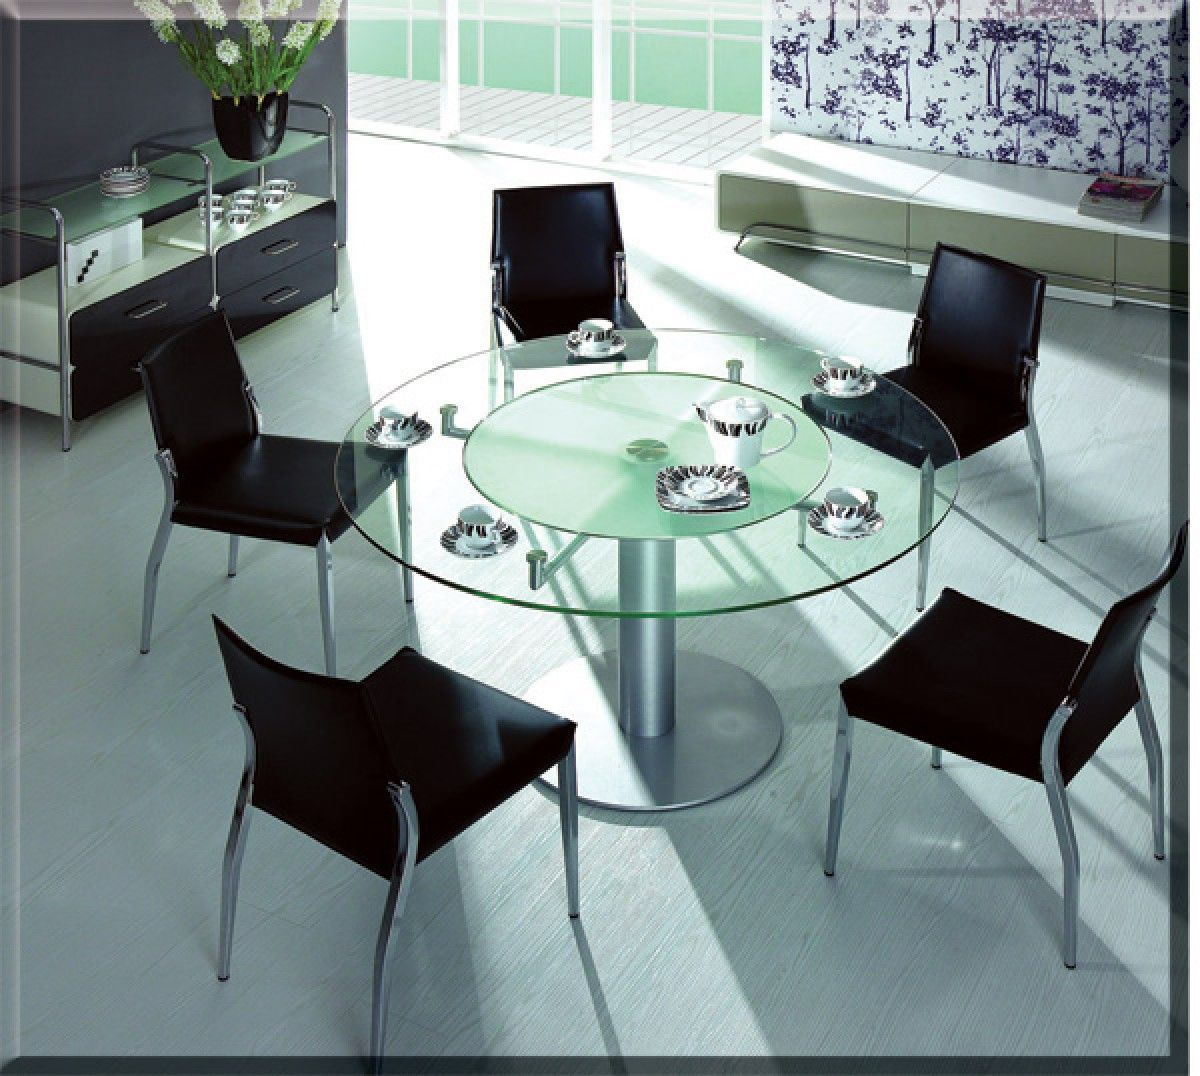 Modern round glass dining tables - Modrest Ct50 Modern Round Glass Dining Table Vgbnct50